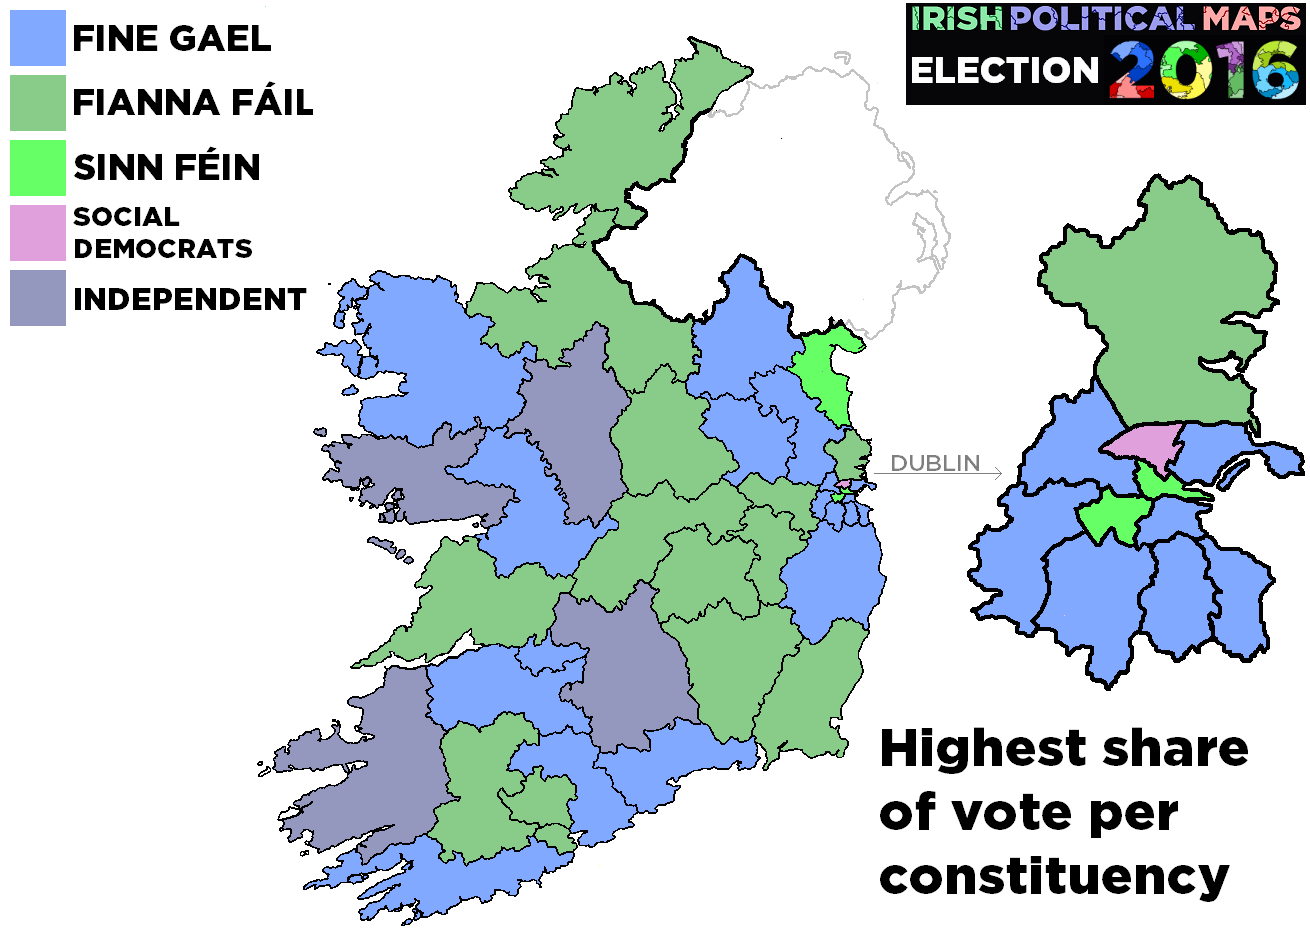 Irish Political Maps General Election 2016